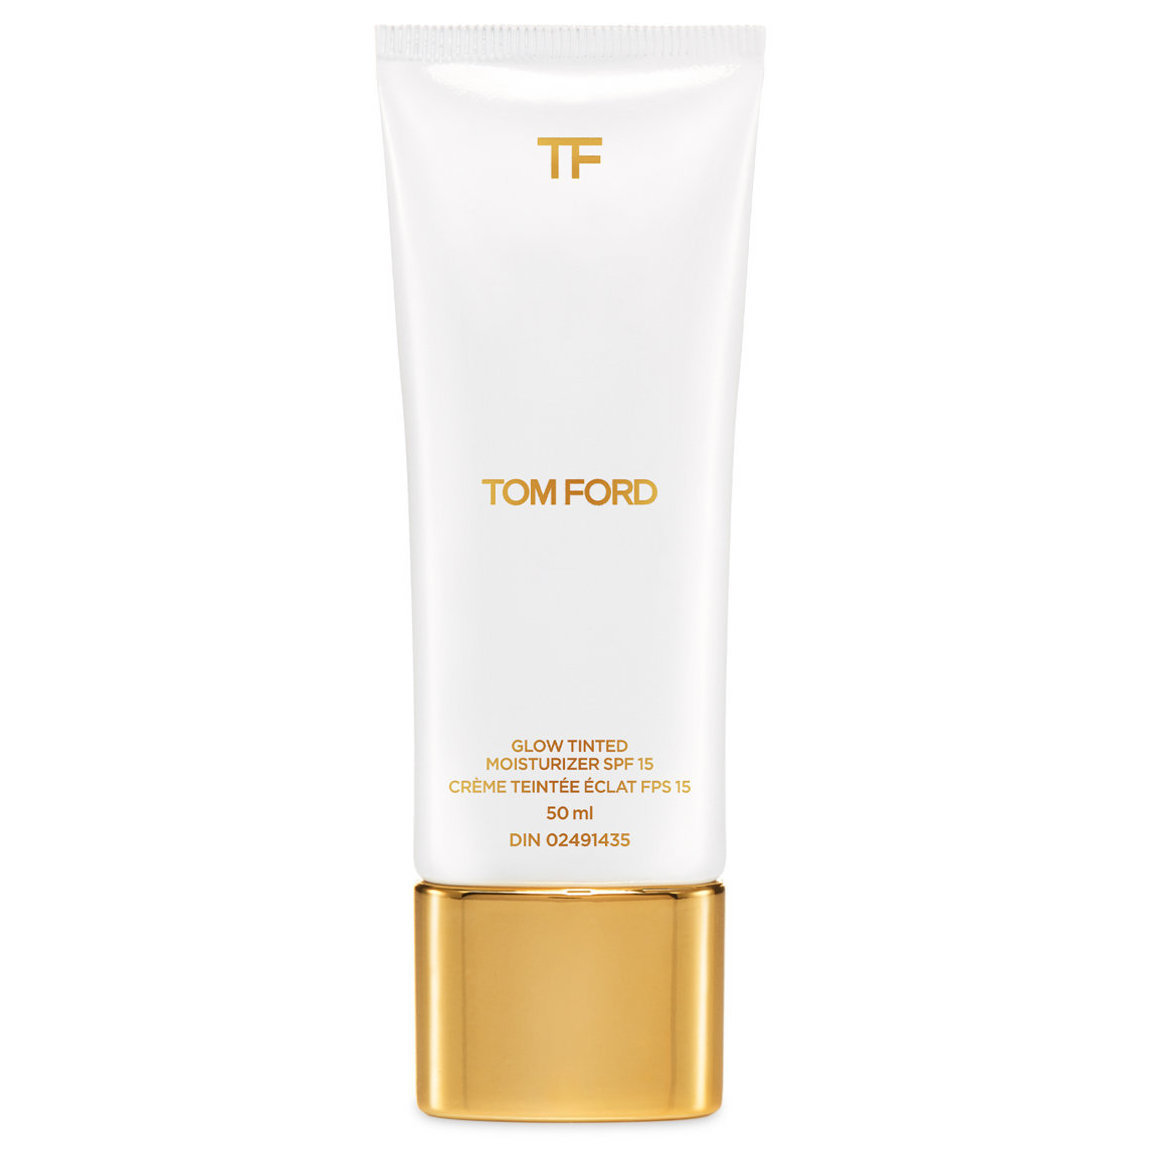 TOM FORD Glow Tinted Moisturizer SPF 15 1.4 Bone alternative view 1.